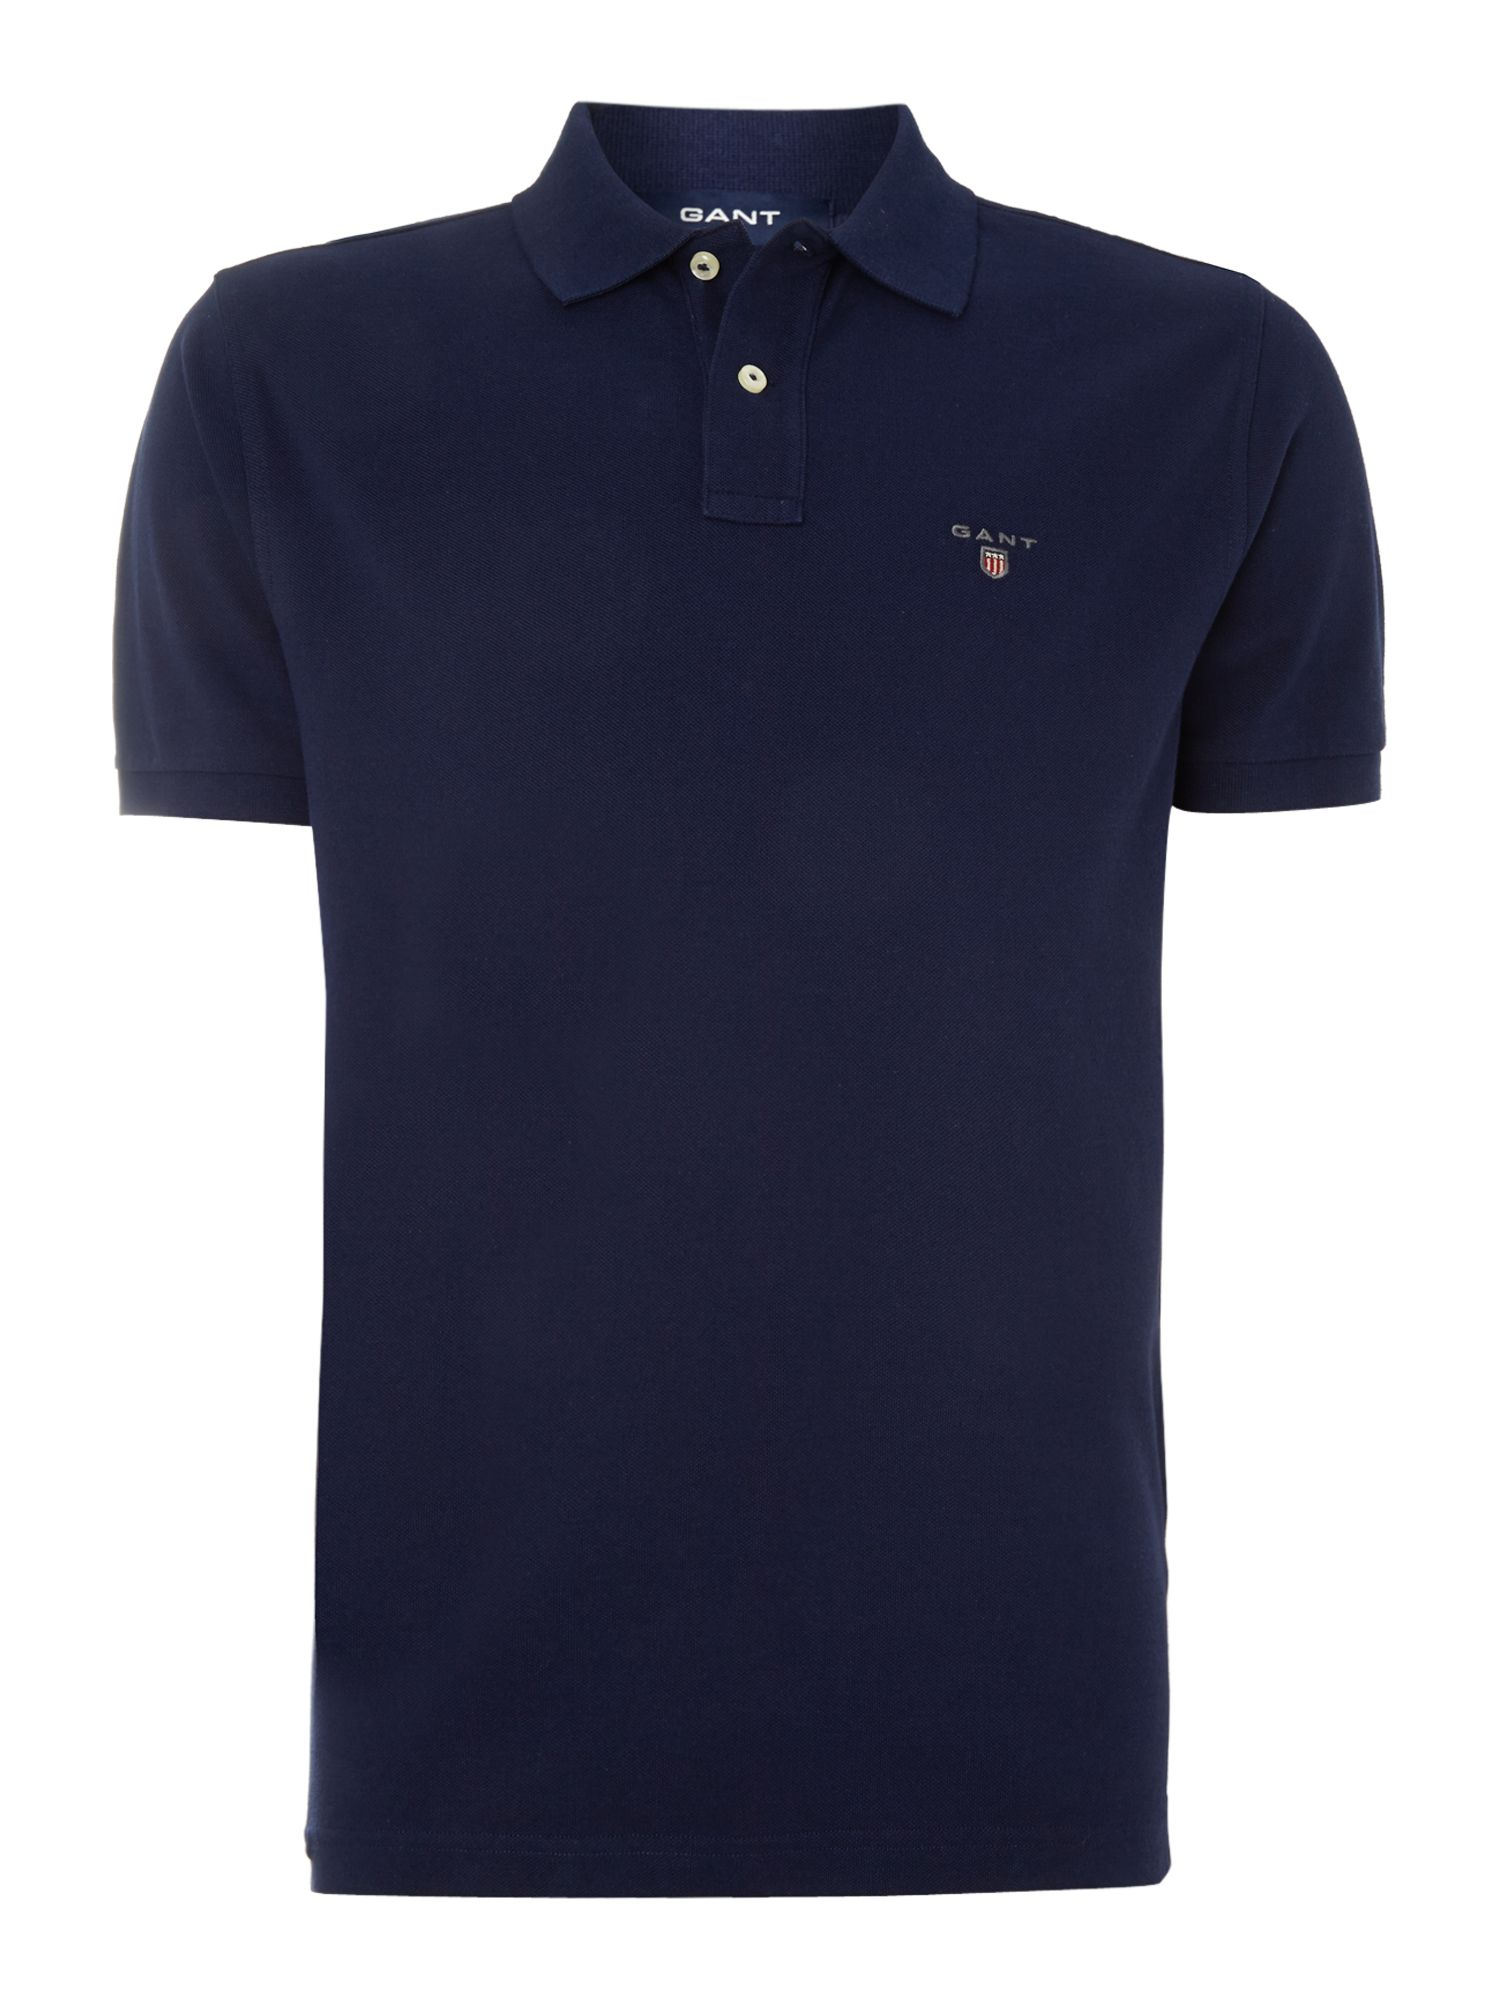 Men's Gant Pique Polo Shirt, Blue